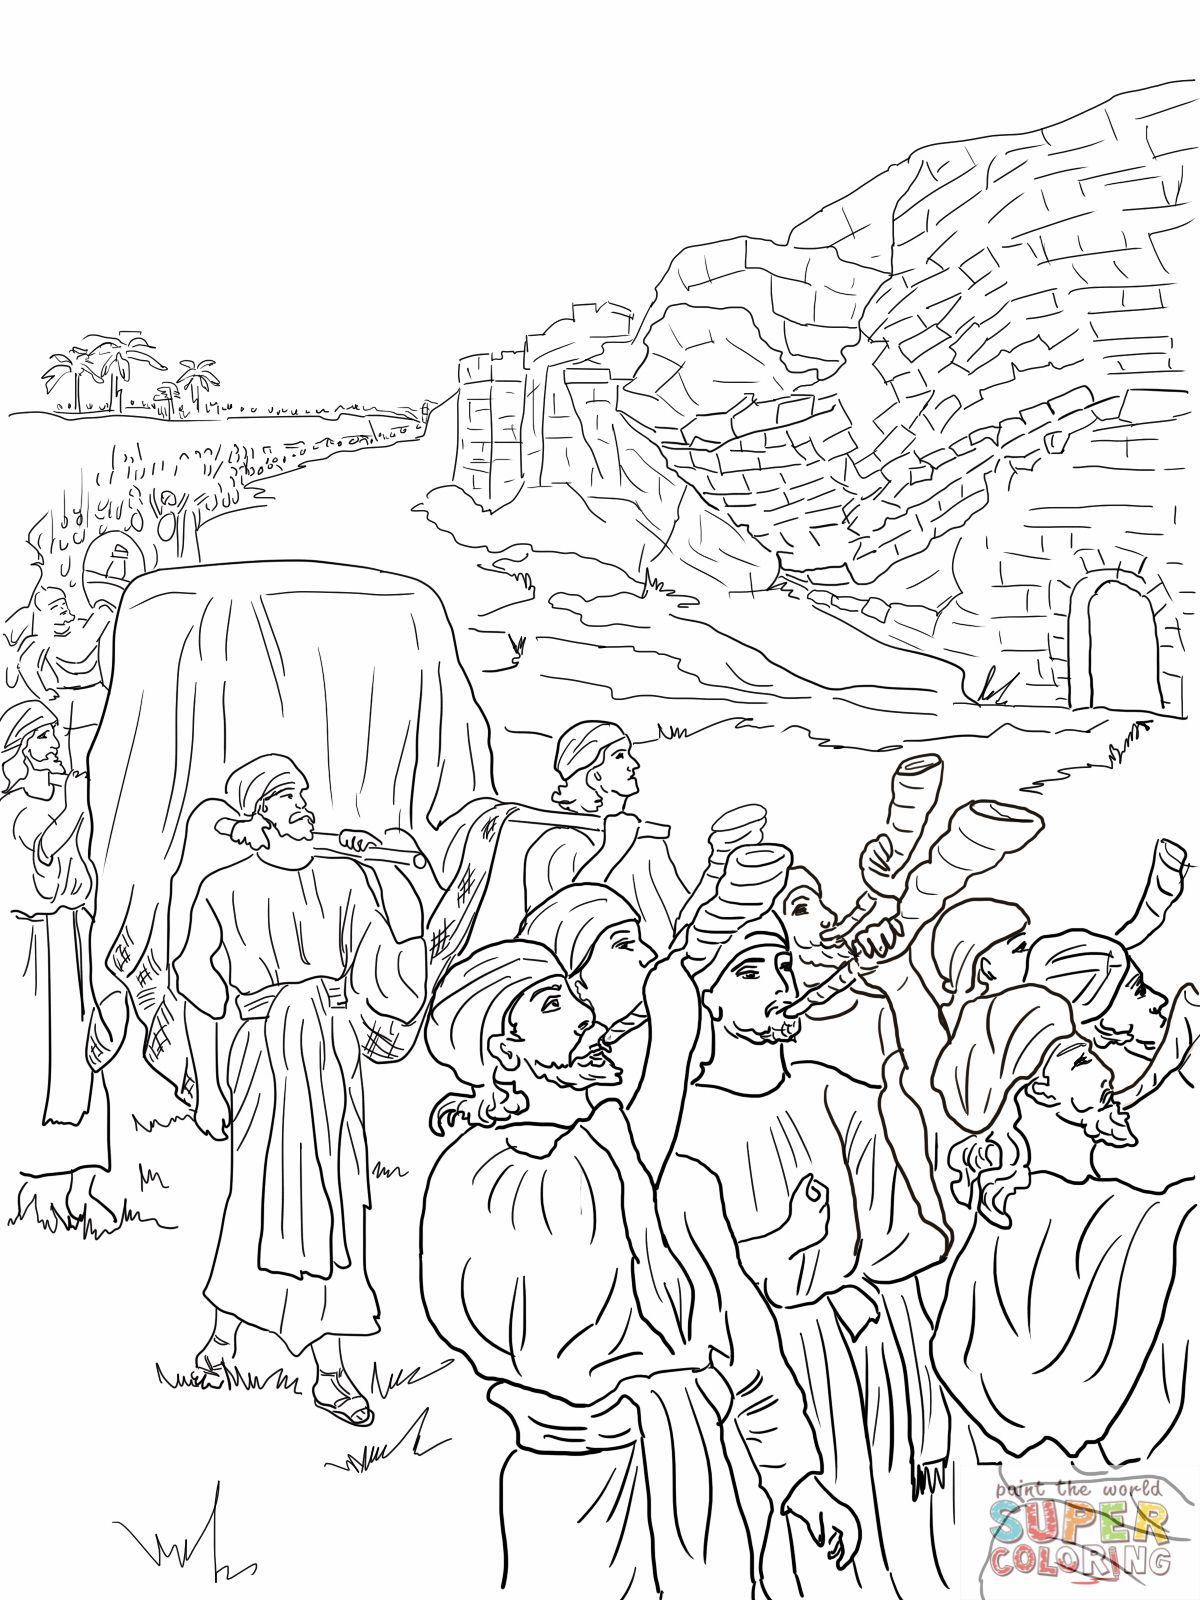 Joshua And The Fall Of Jericho Bible Coloring Pages Sunday School Coloring Pages Bible Coloring Bible Coloring Pages